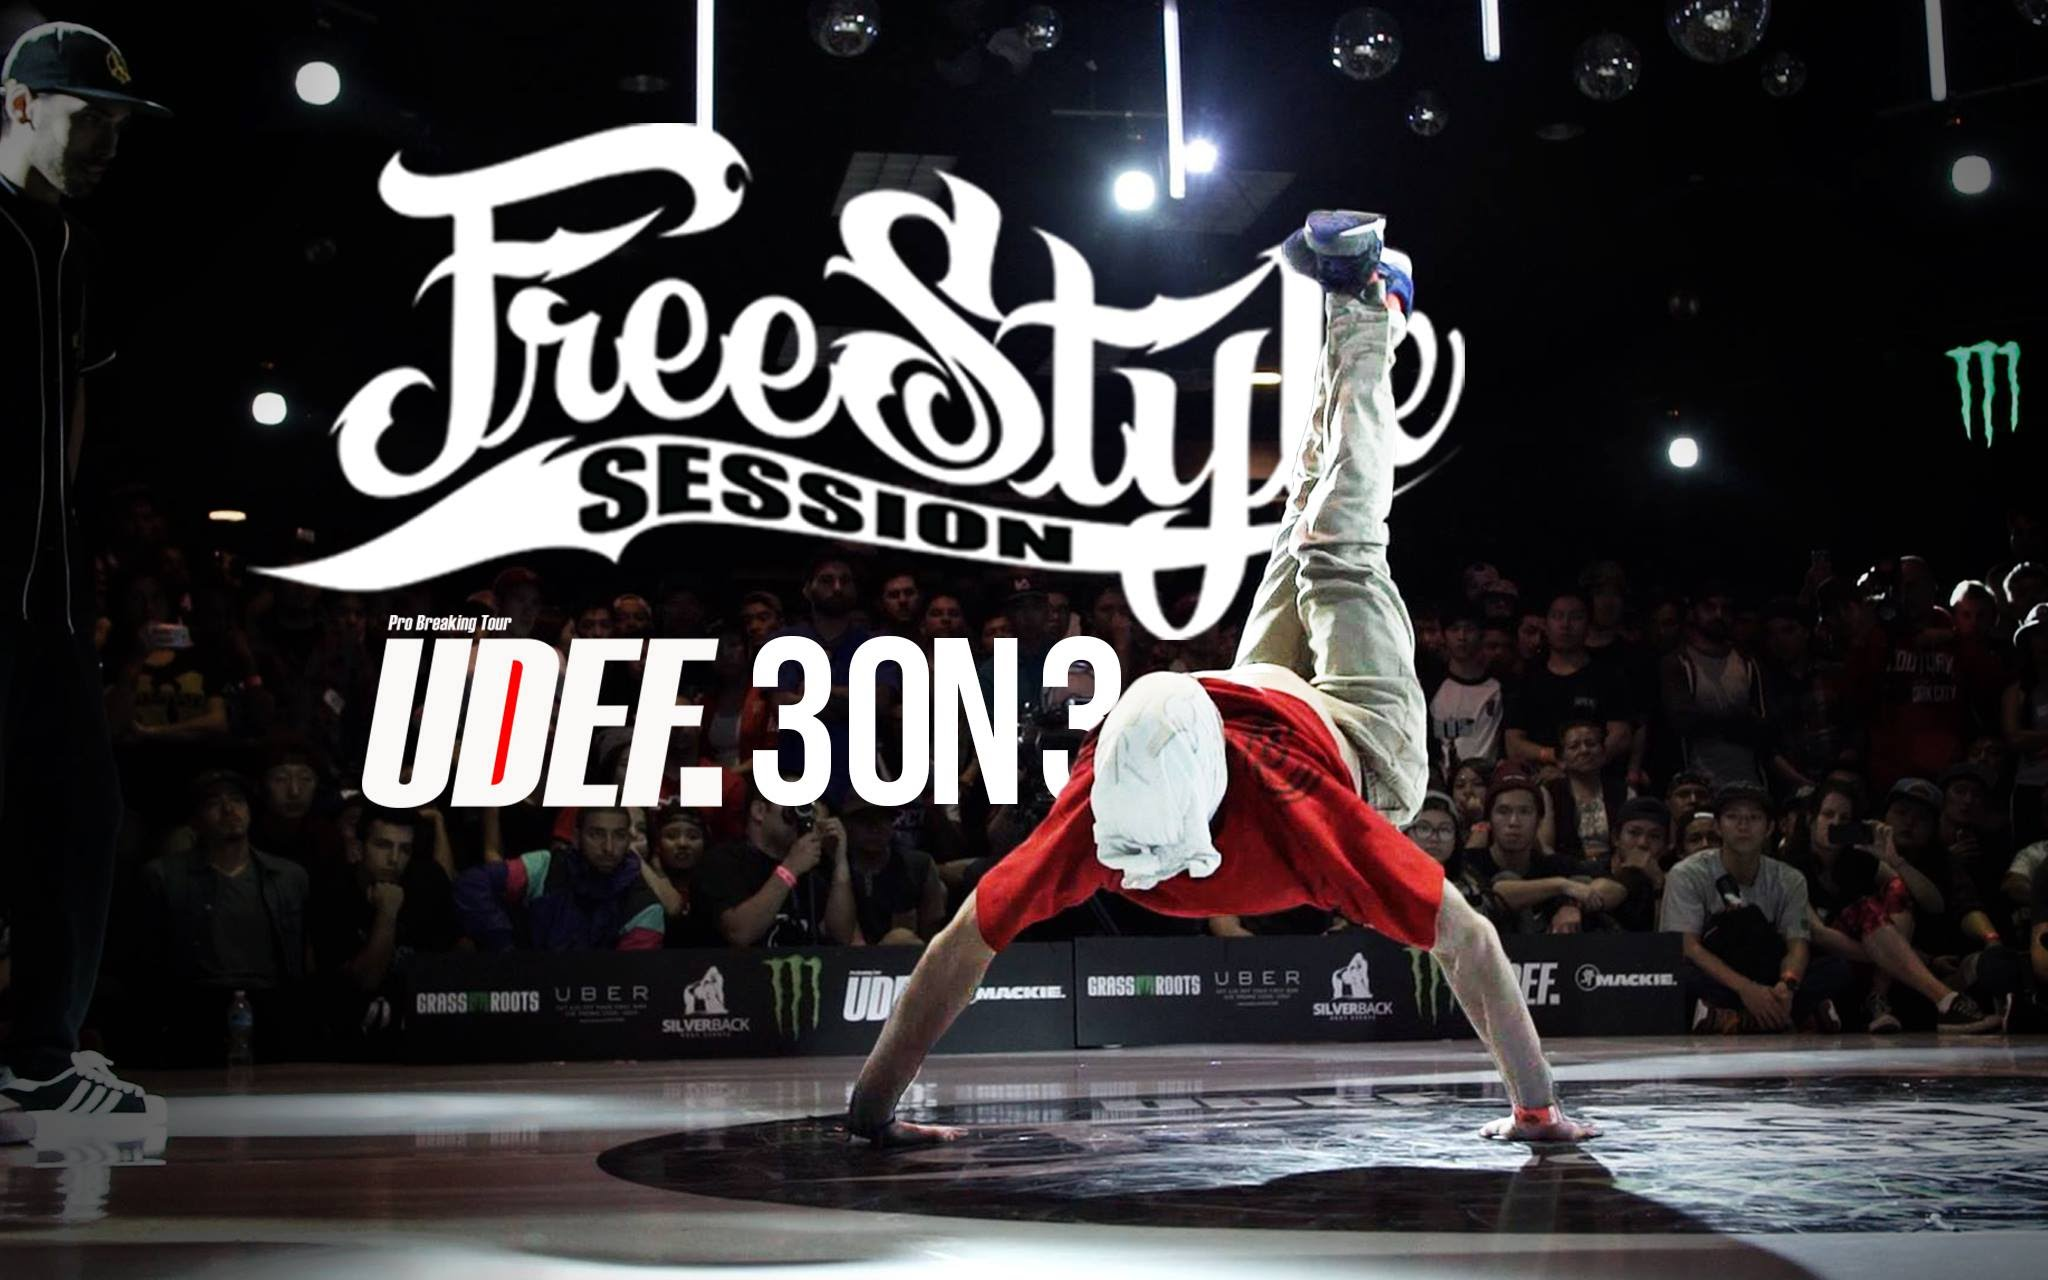 freestyle-session-2015-3on3-bboy-battles-yakfilms-video